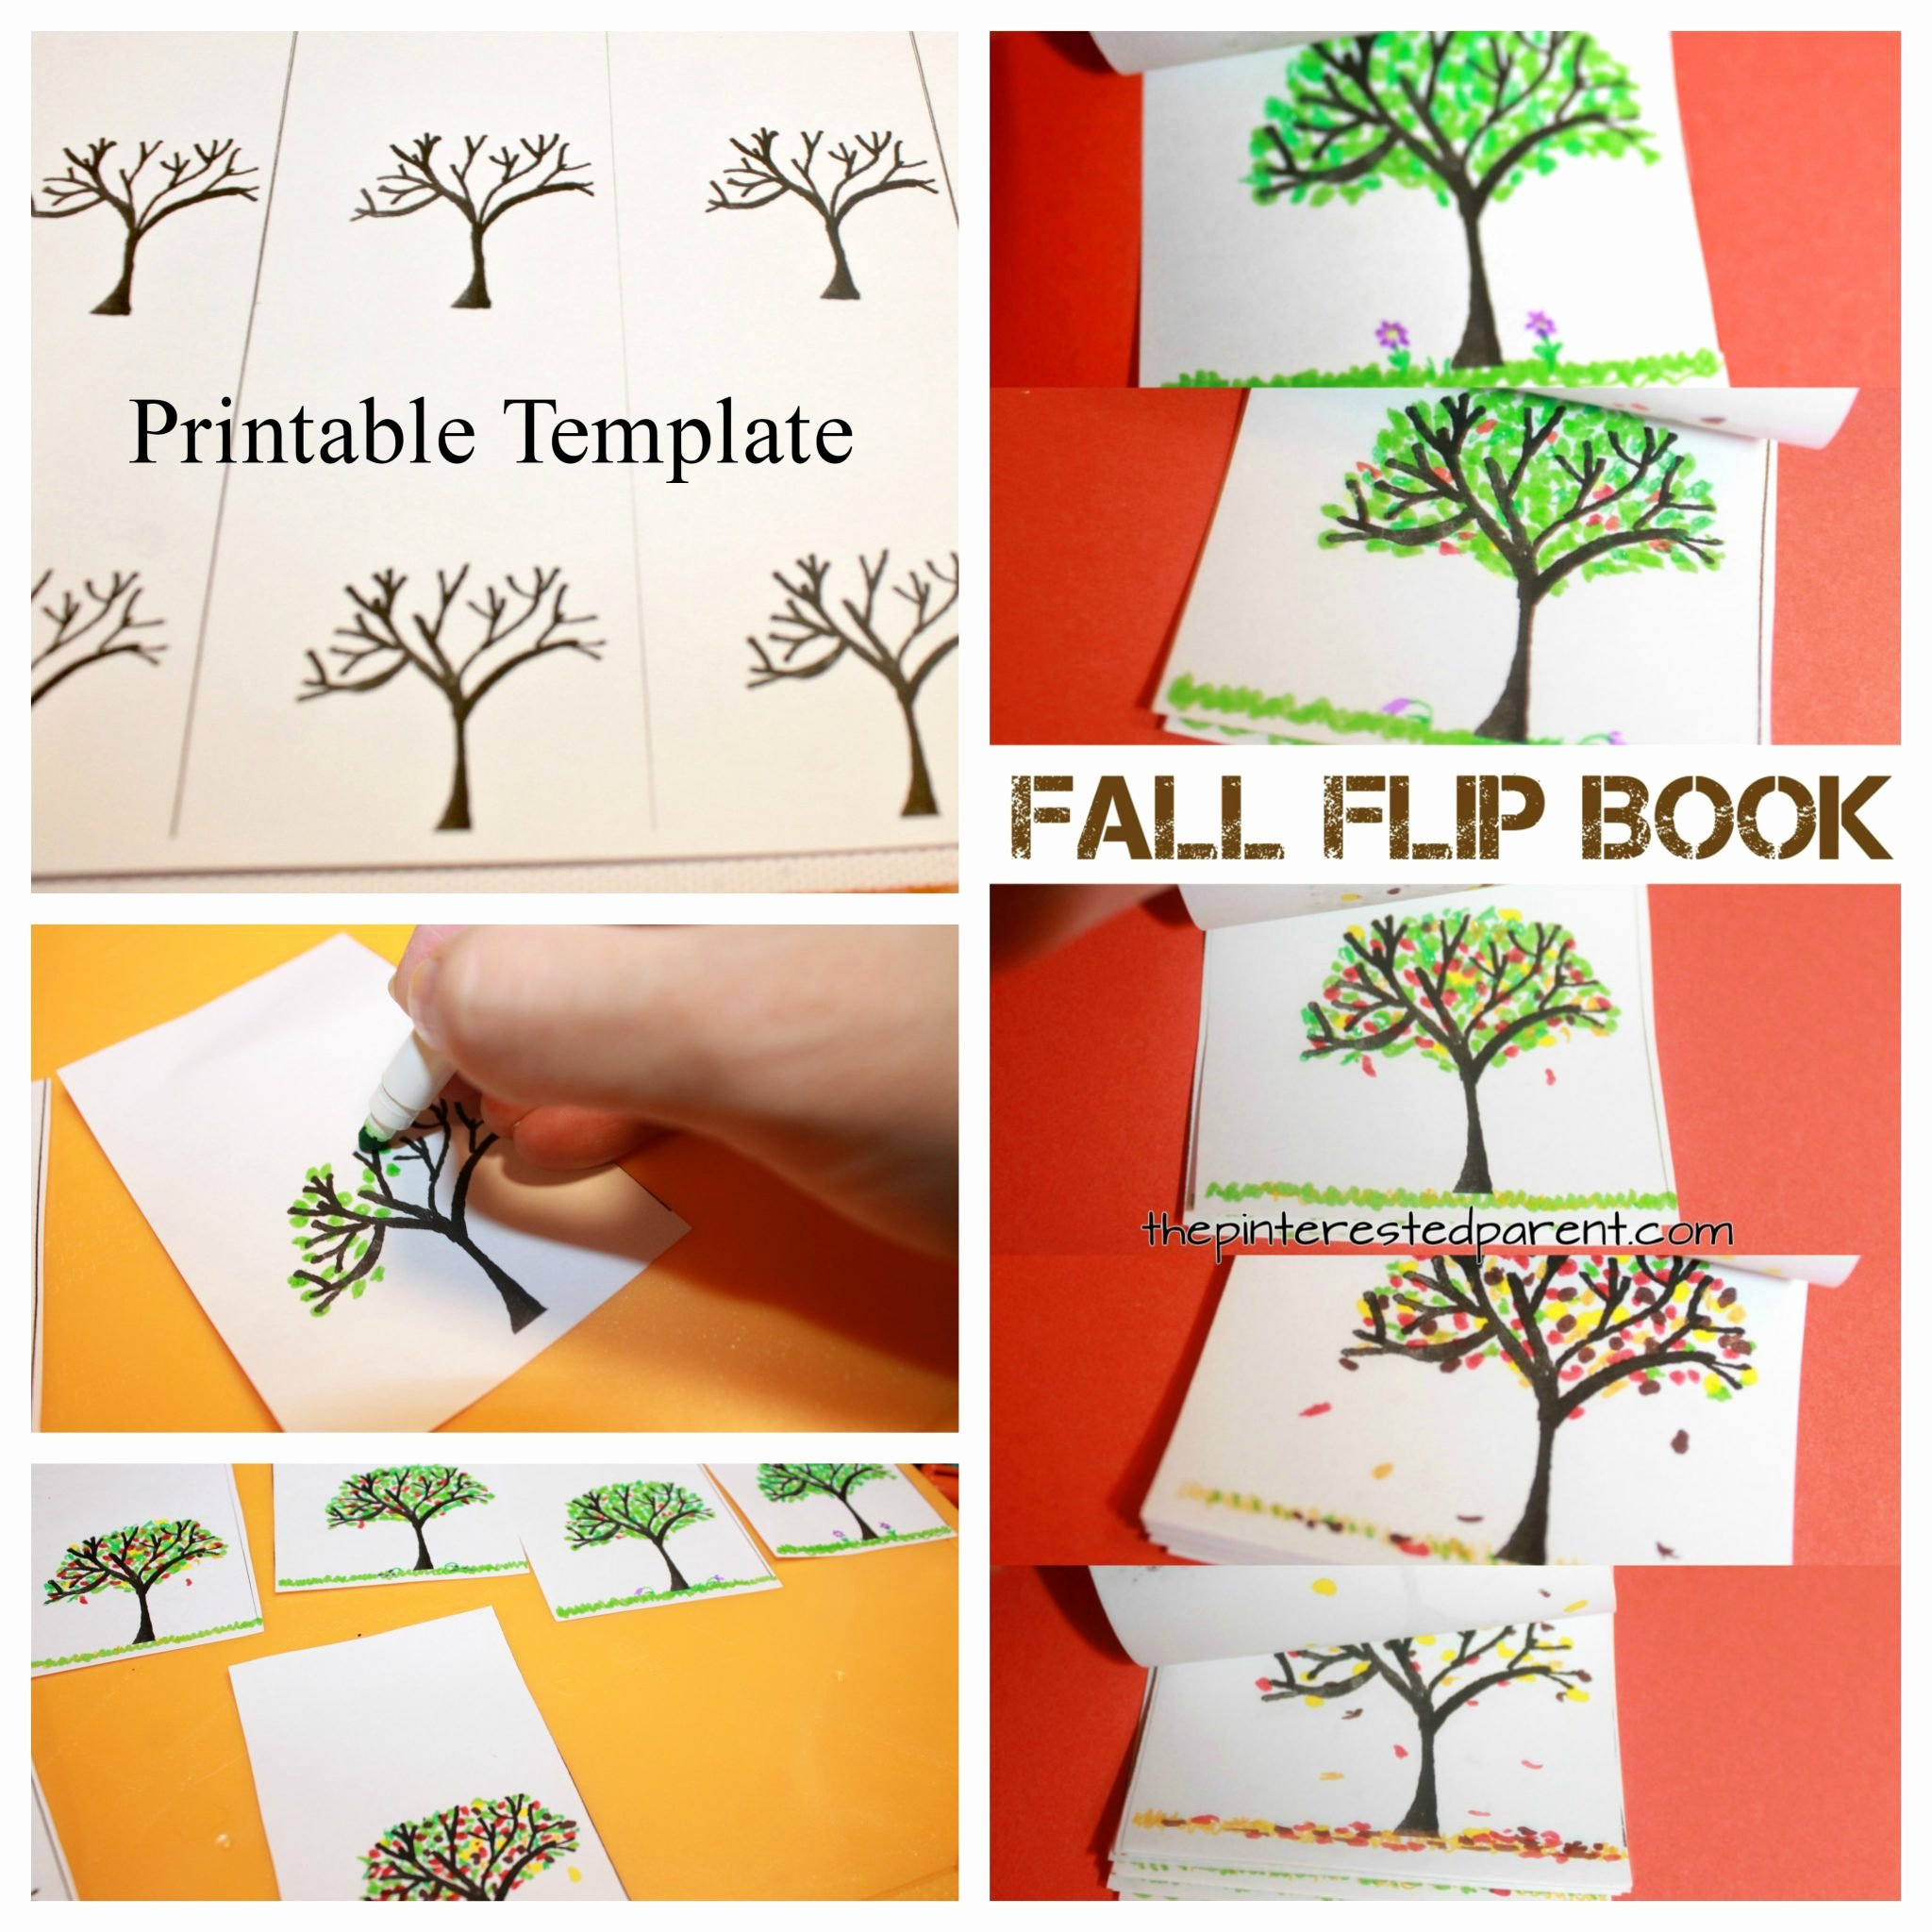 Printable Flip Book Template Elegant Fall Tree Flip Book – the Pinterested Parent